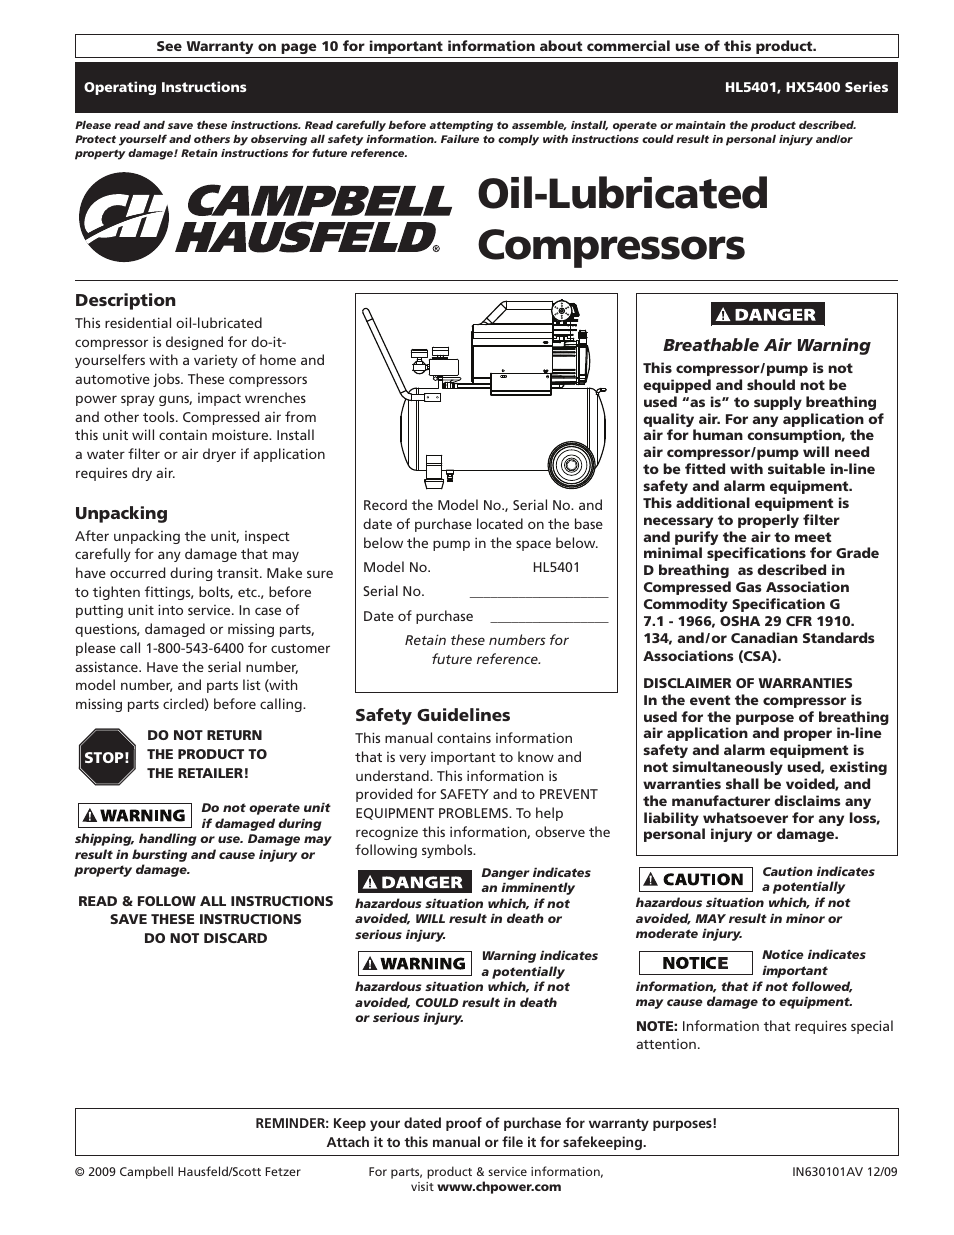 campbell hausfeld hl5401 series user manual 32 pages also for rh manualsdir com Online Manual